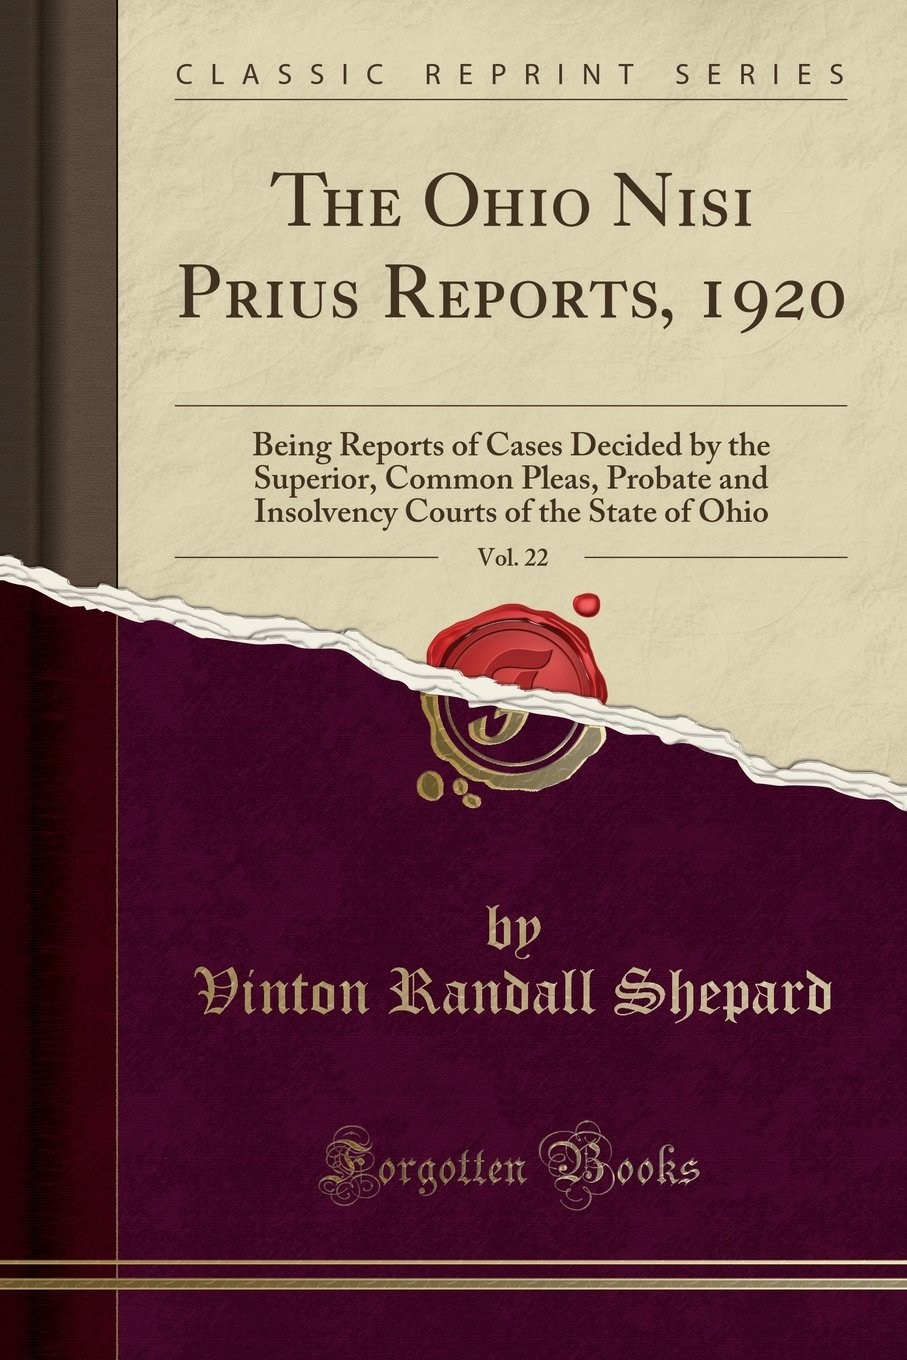 The Ohio Nisi Prius Reports, 1920, Vol. 22: Being Reports of Cases Decided by the Superior, Common Pleas, Probate and Insolvency Courts of the State of Ohio (Classic Reprint) pdf epub